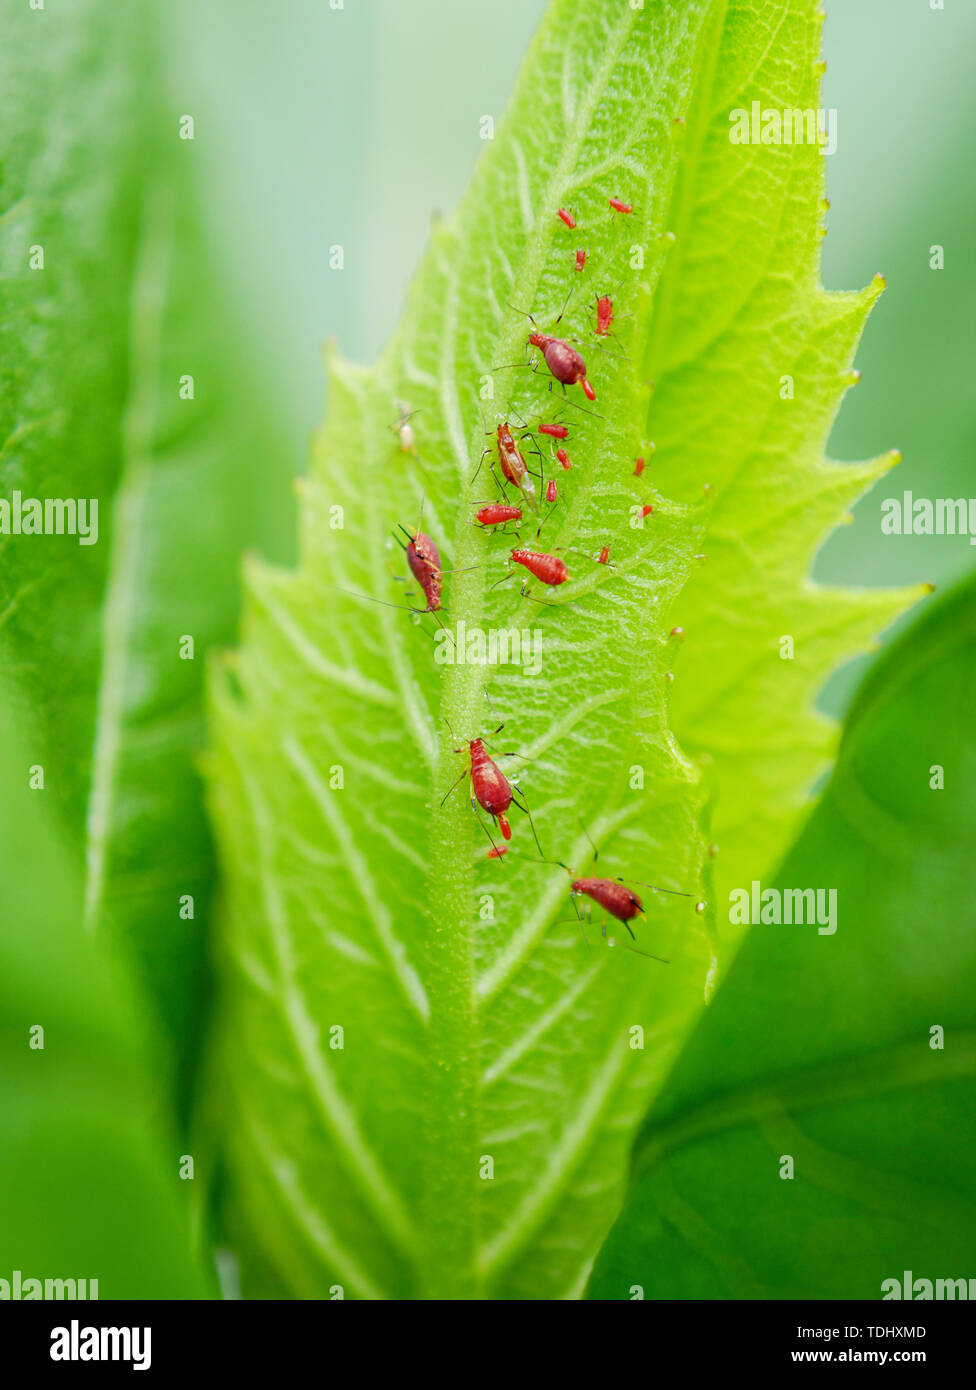 Red aphids (Uroleucon sp) on cup plant (Sylphium perfoliatum), two giving birth. - Stock Image